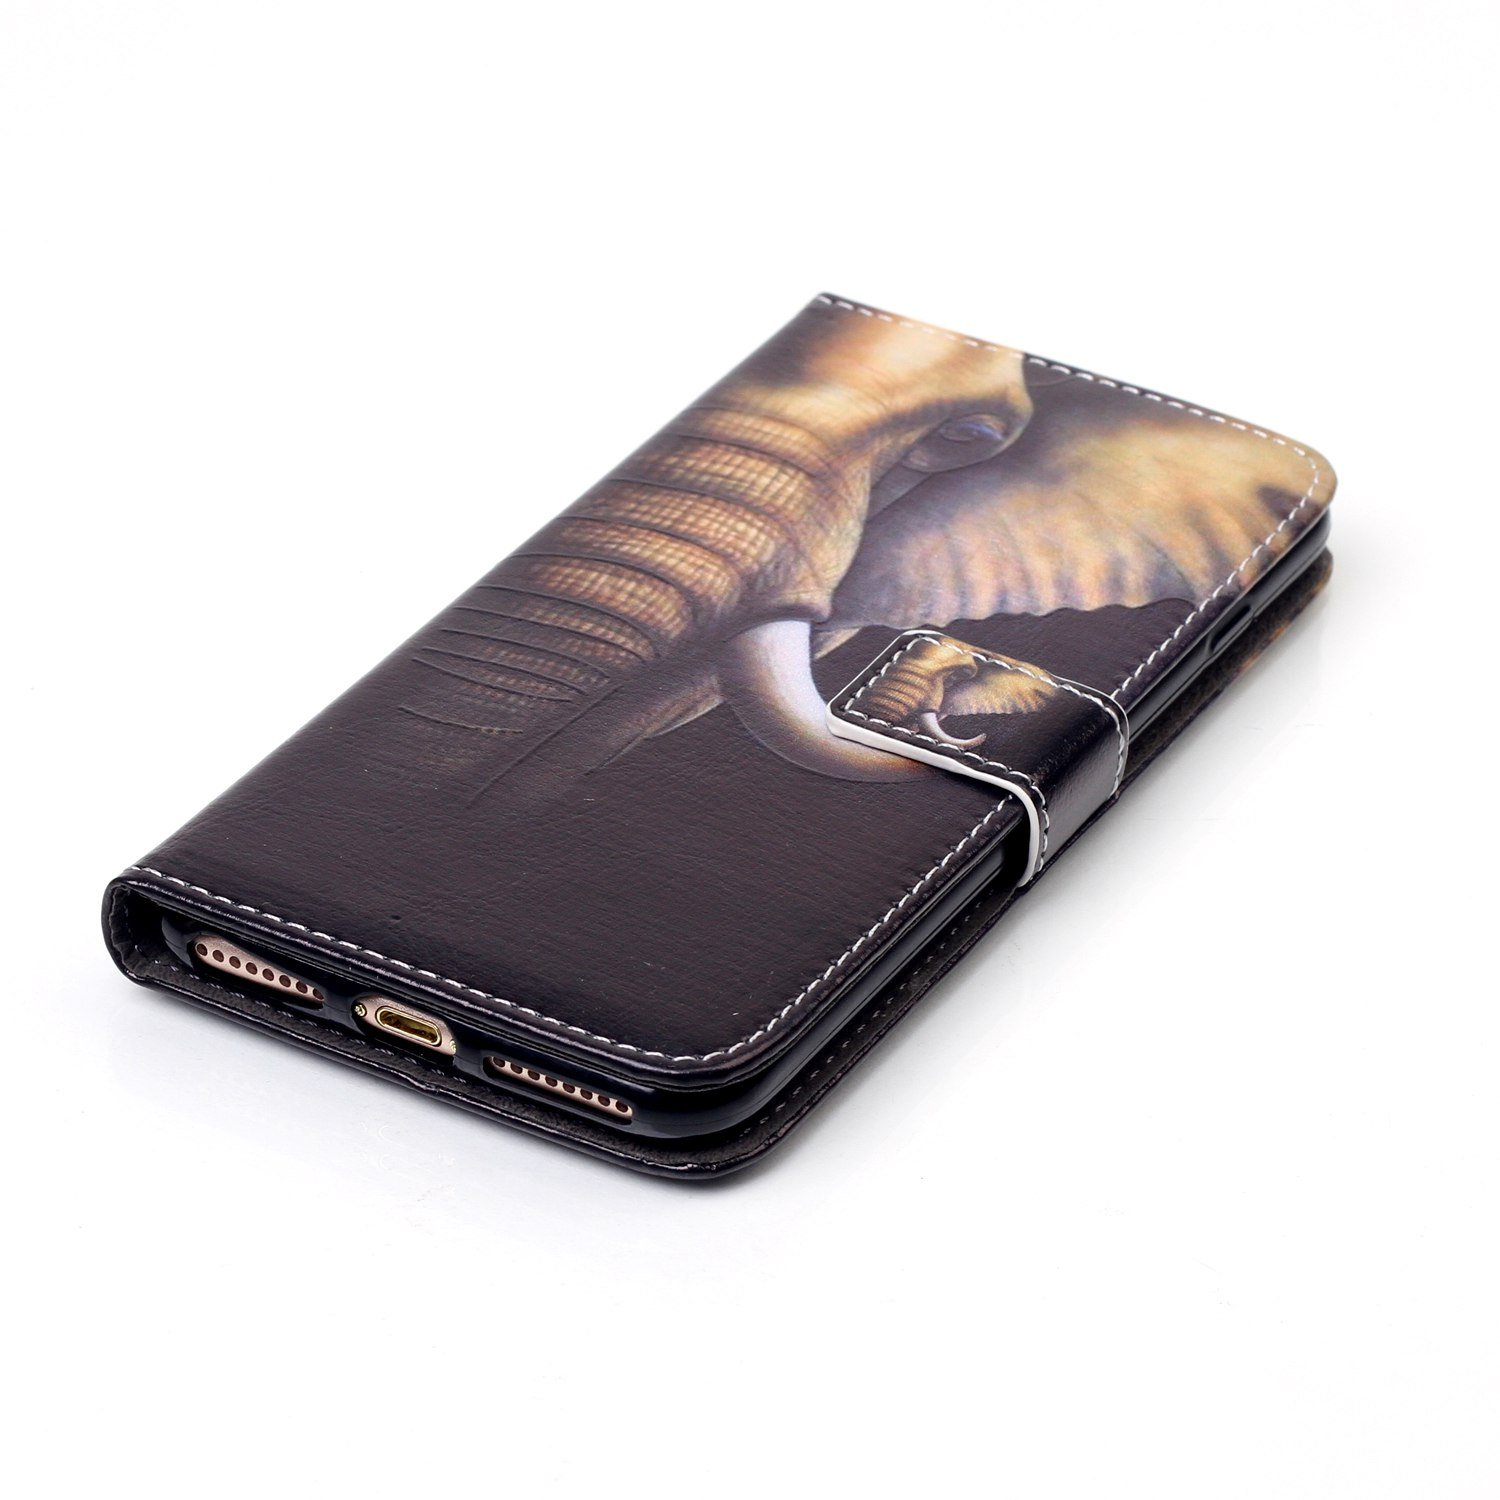 iPhone 8 Plus - Case, iPhone 7 Plus - Case, MerKuyom [Kickstand] Premium PU Leather Wallet Pouch Flap Cover Skin Case For Apple iPhone 7 Plus/iPhone 8 Plus 5.5'', Stylus (Cool Elephant Head) by MerKuyom (Image #4)